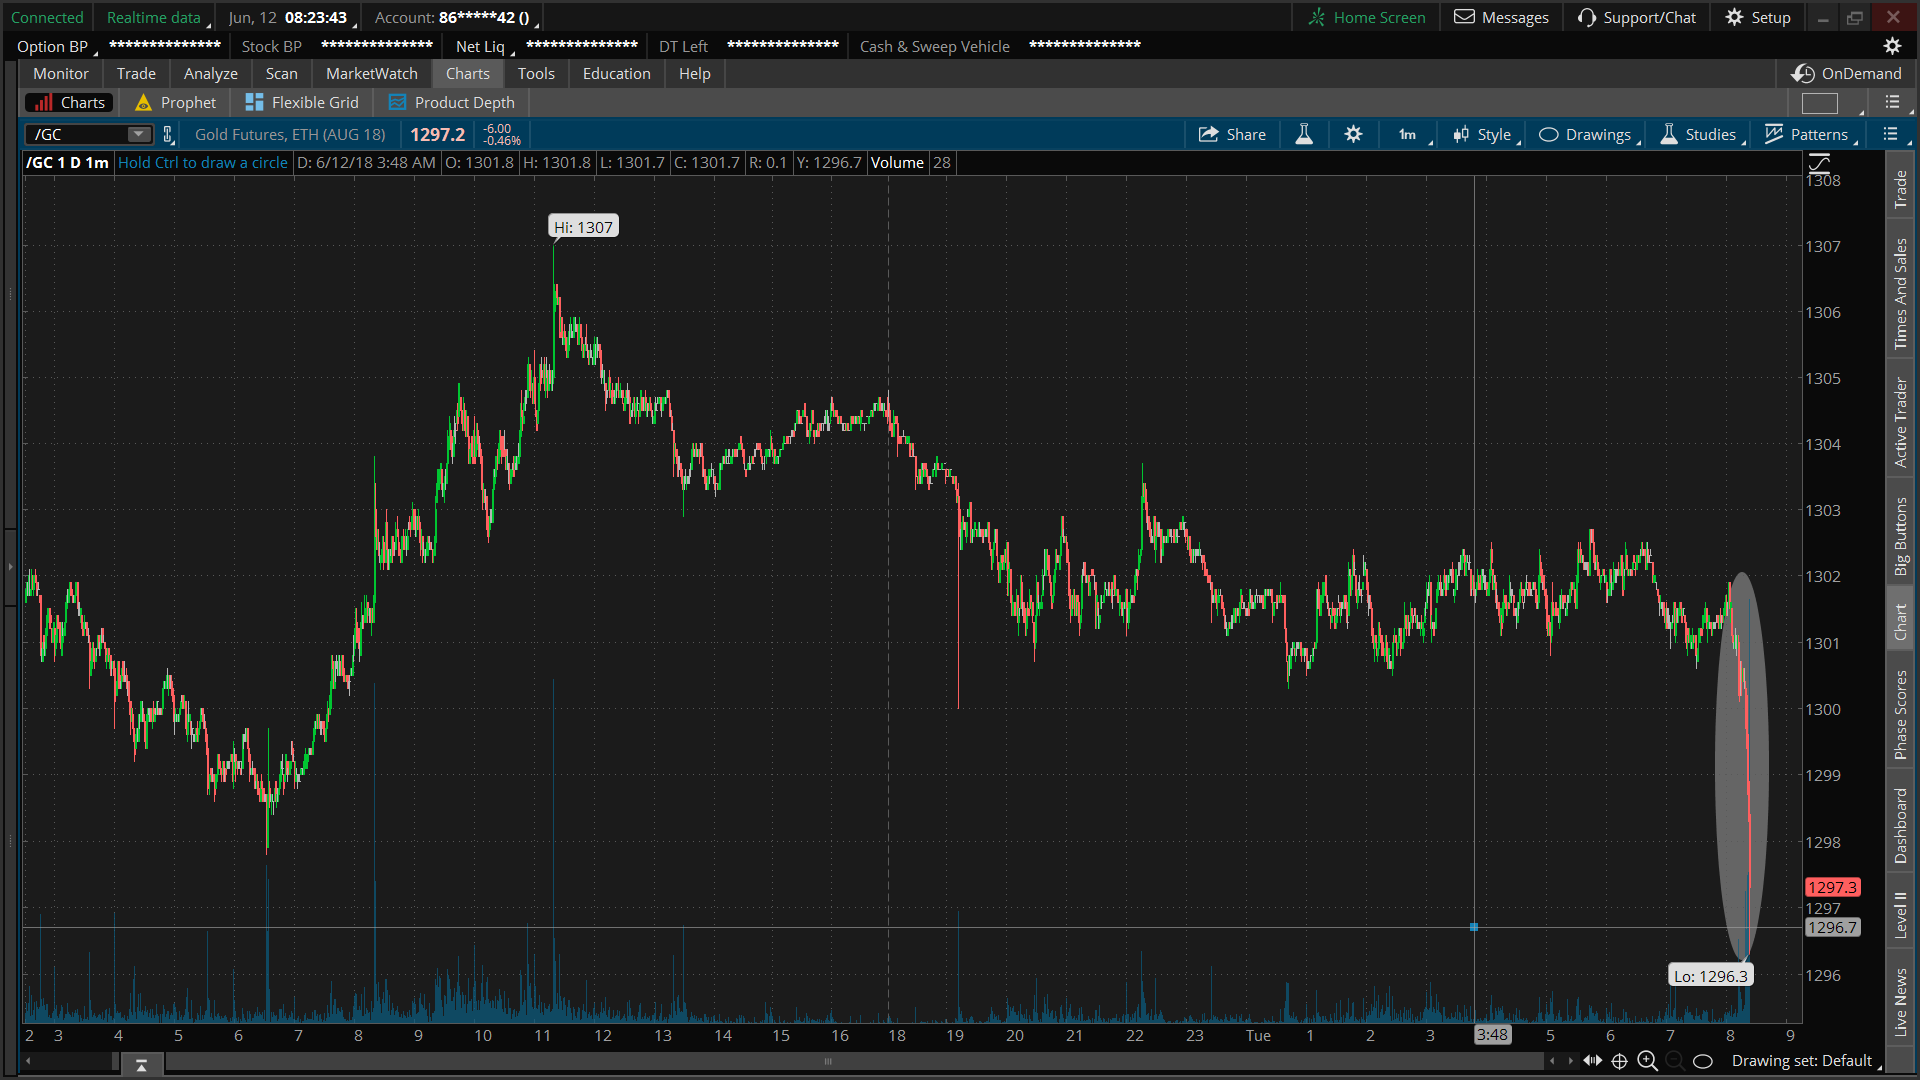 The 1-min chart does not give any indication for this drop.